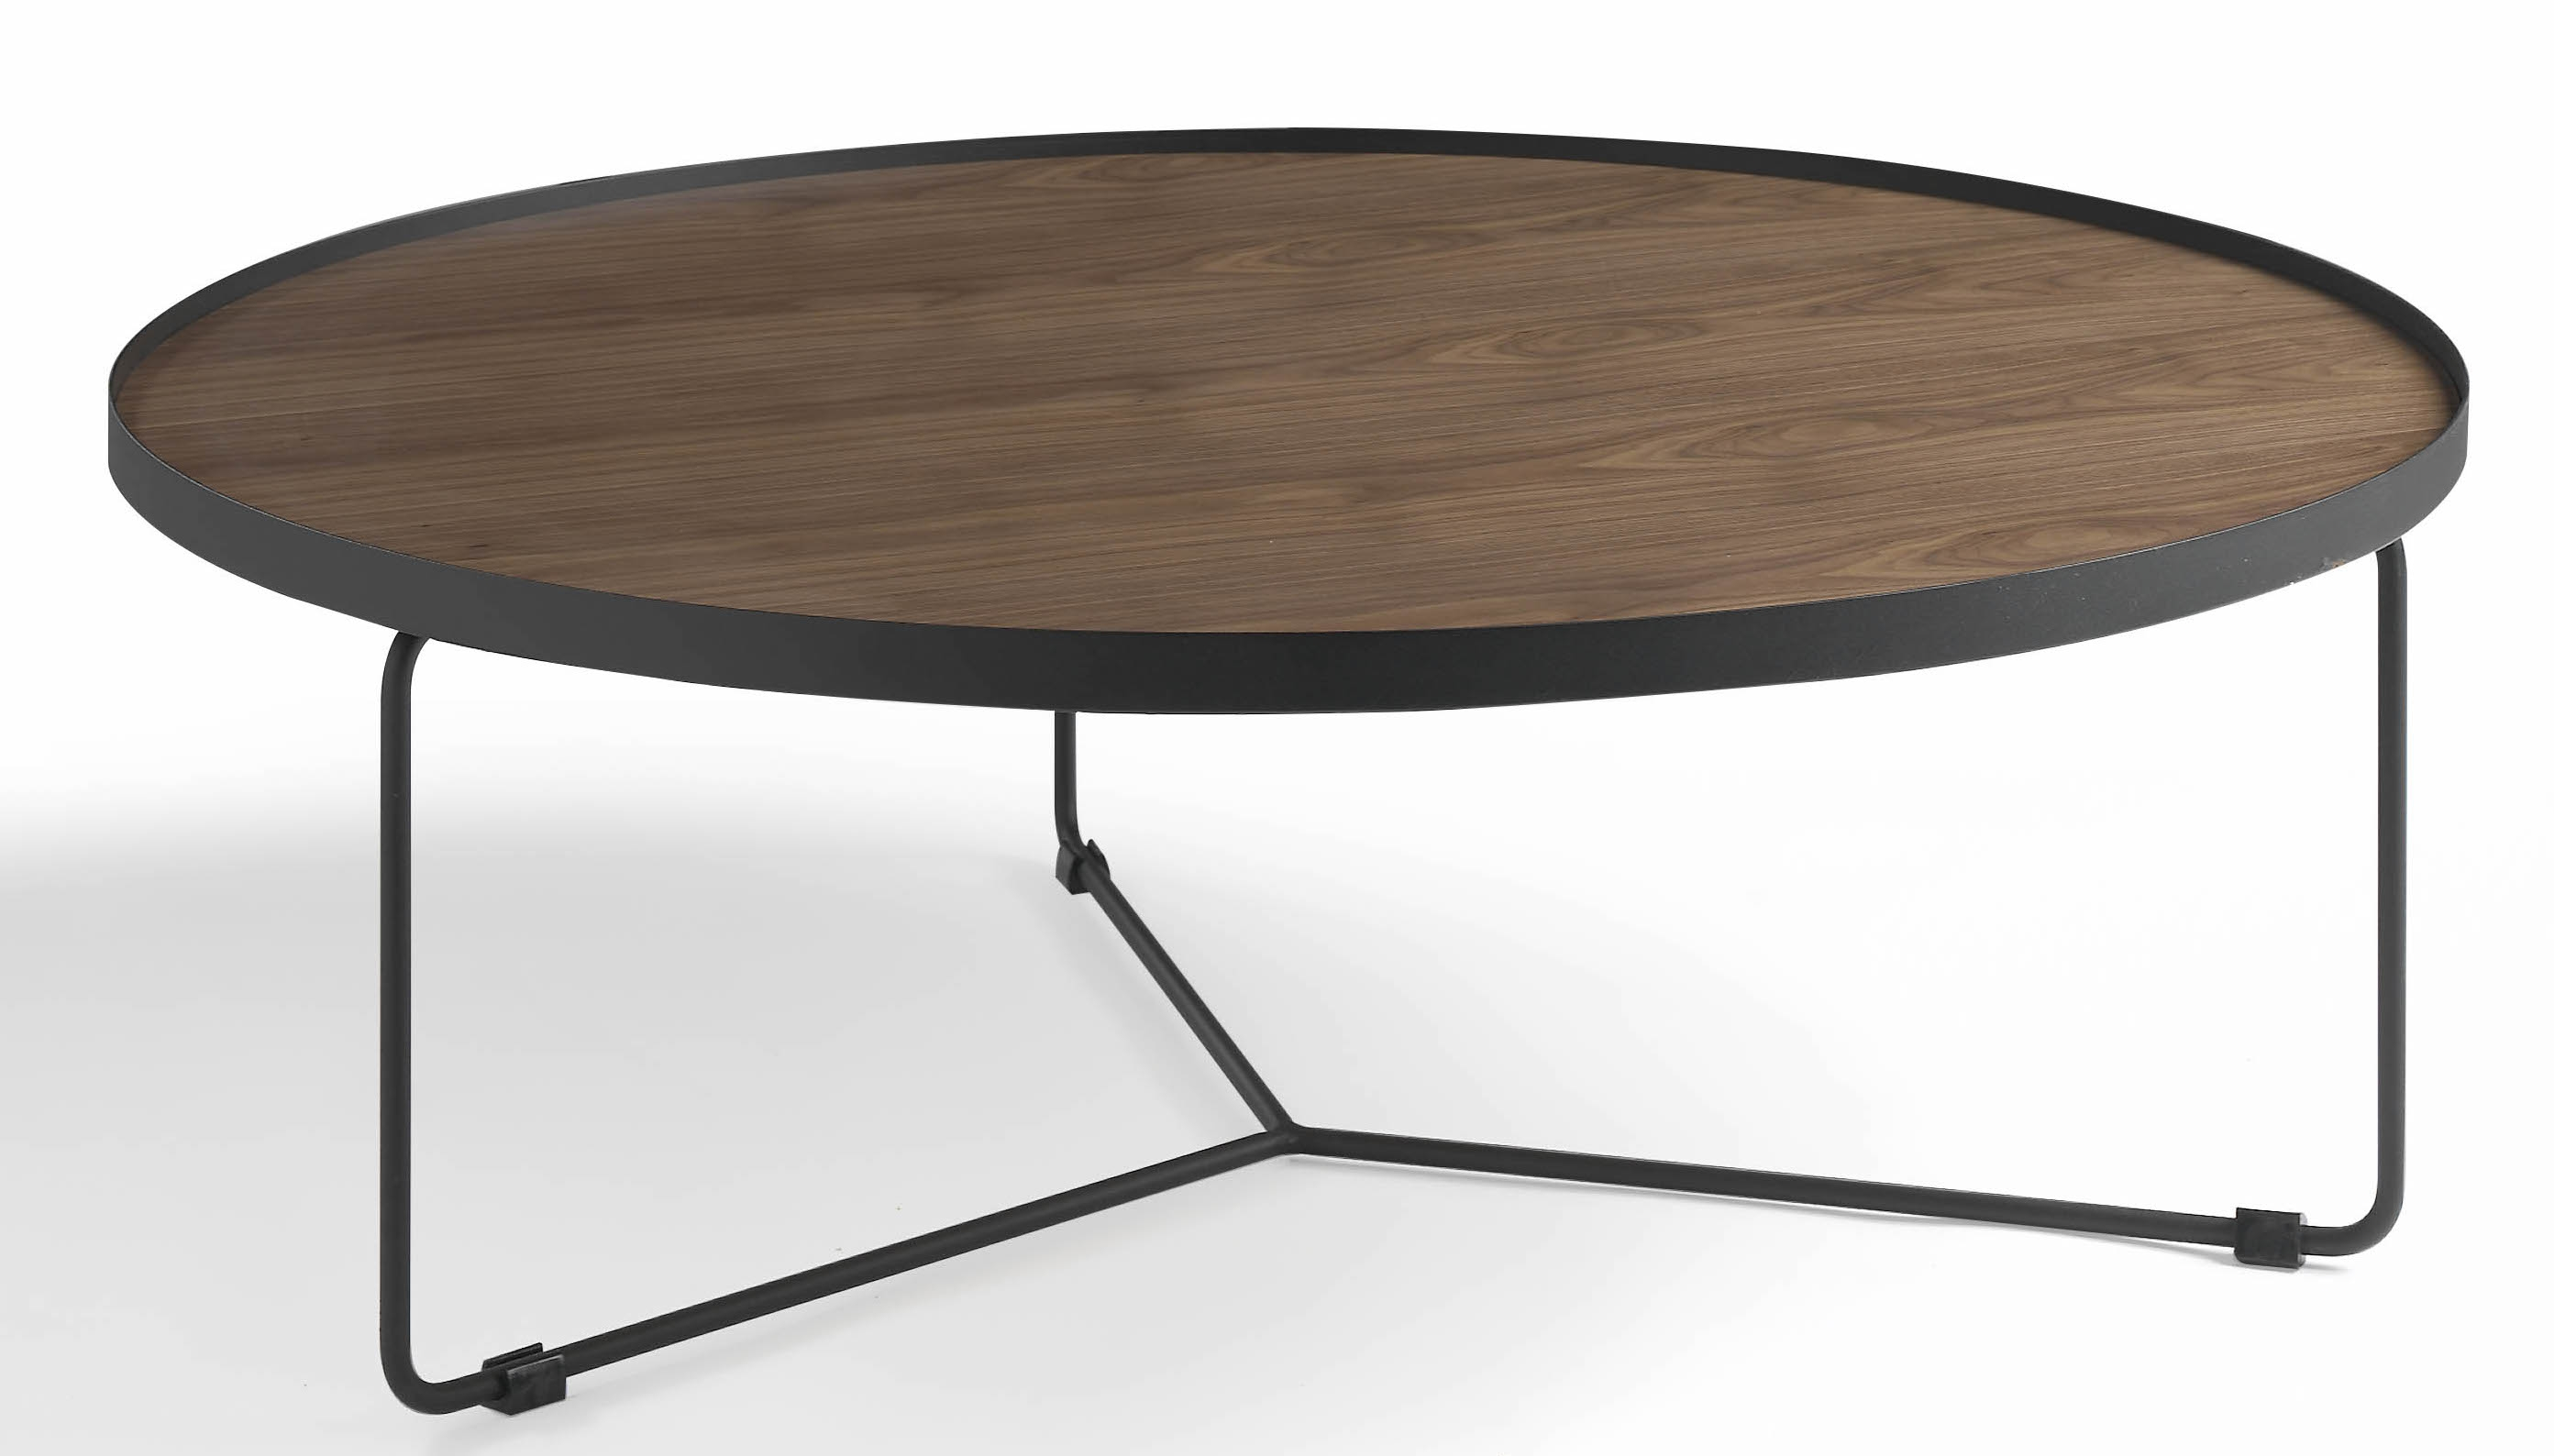 Table basse ronde bois noyer et m tal noir noka for Table ronde bois metal